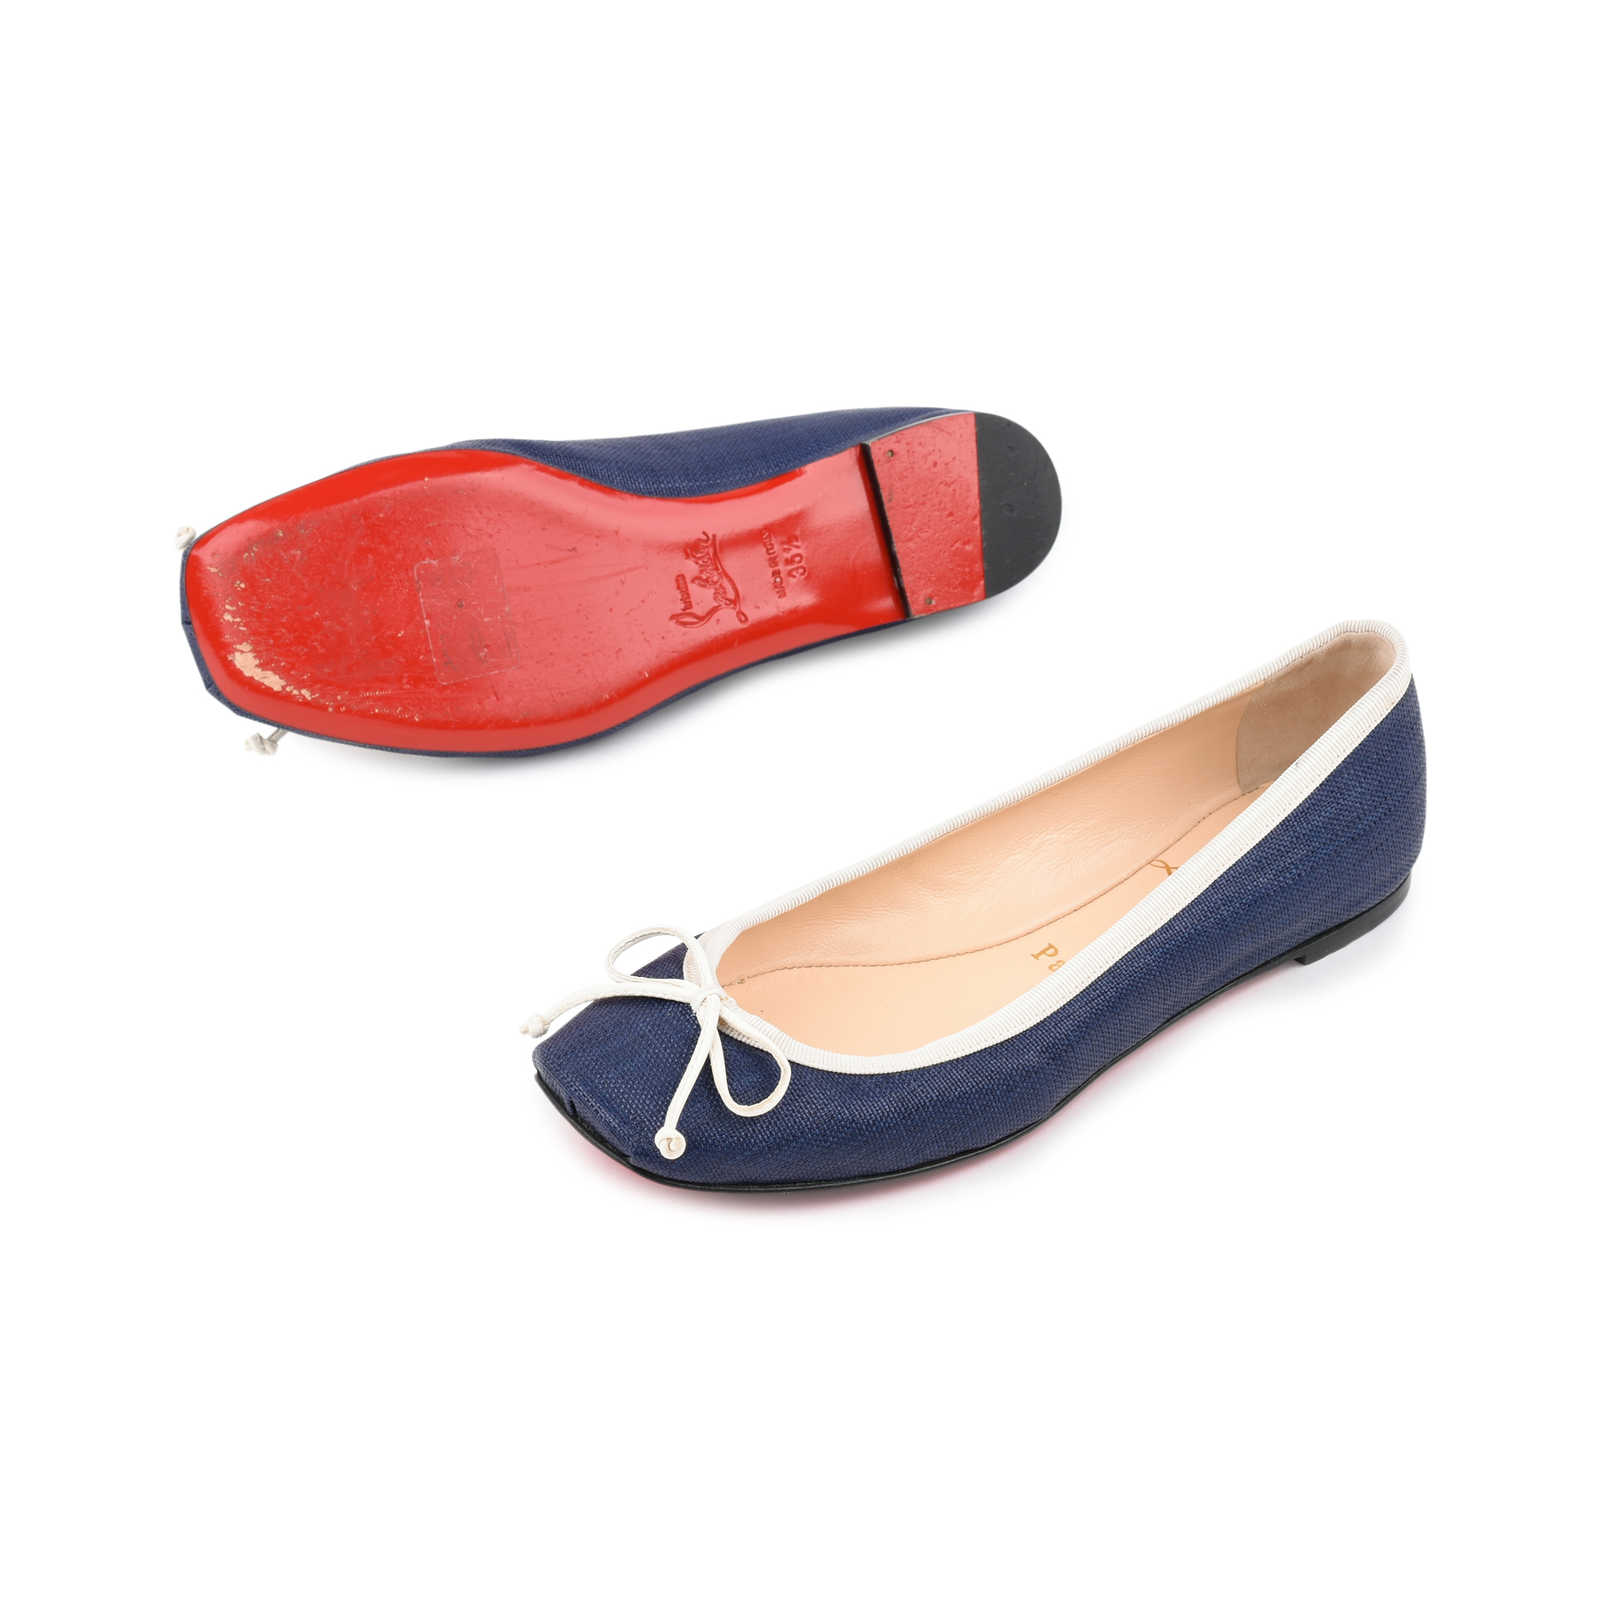 58acee1e862 ... Authentic Second Hand Christian Louboutin Canvas Rosella Flats  (PSS-080-00253) ...